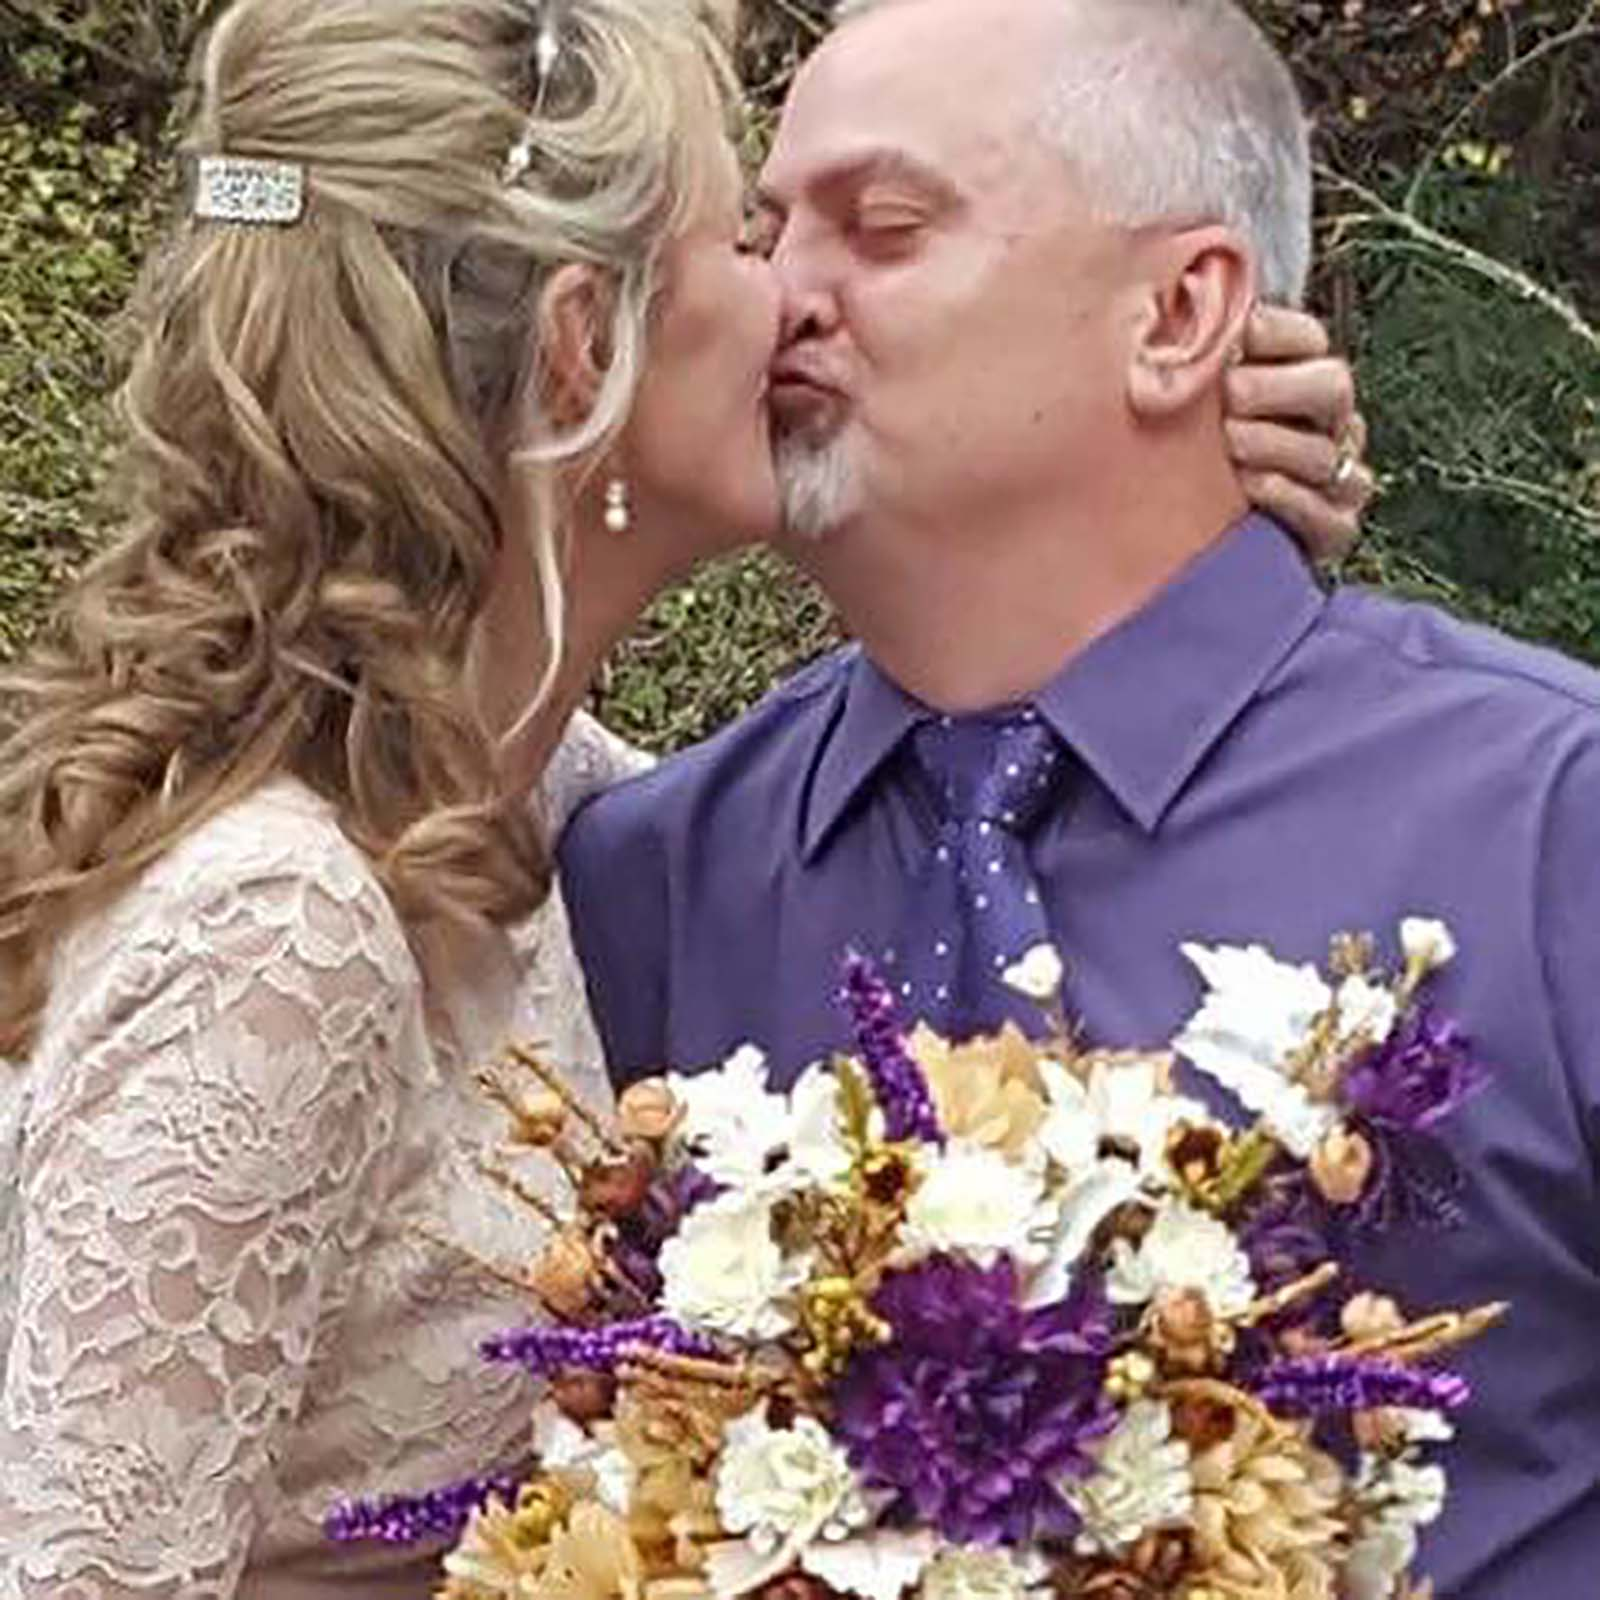 Couple just got married kissing